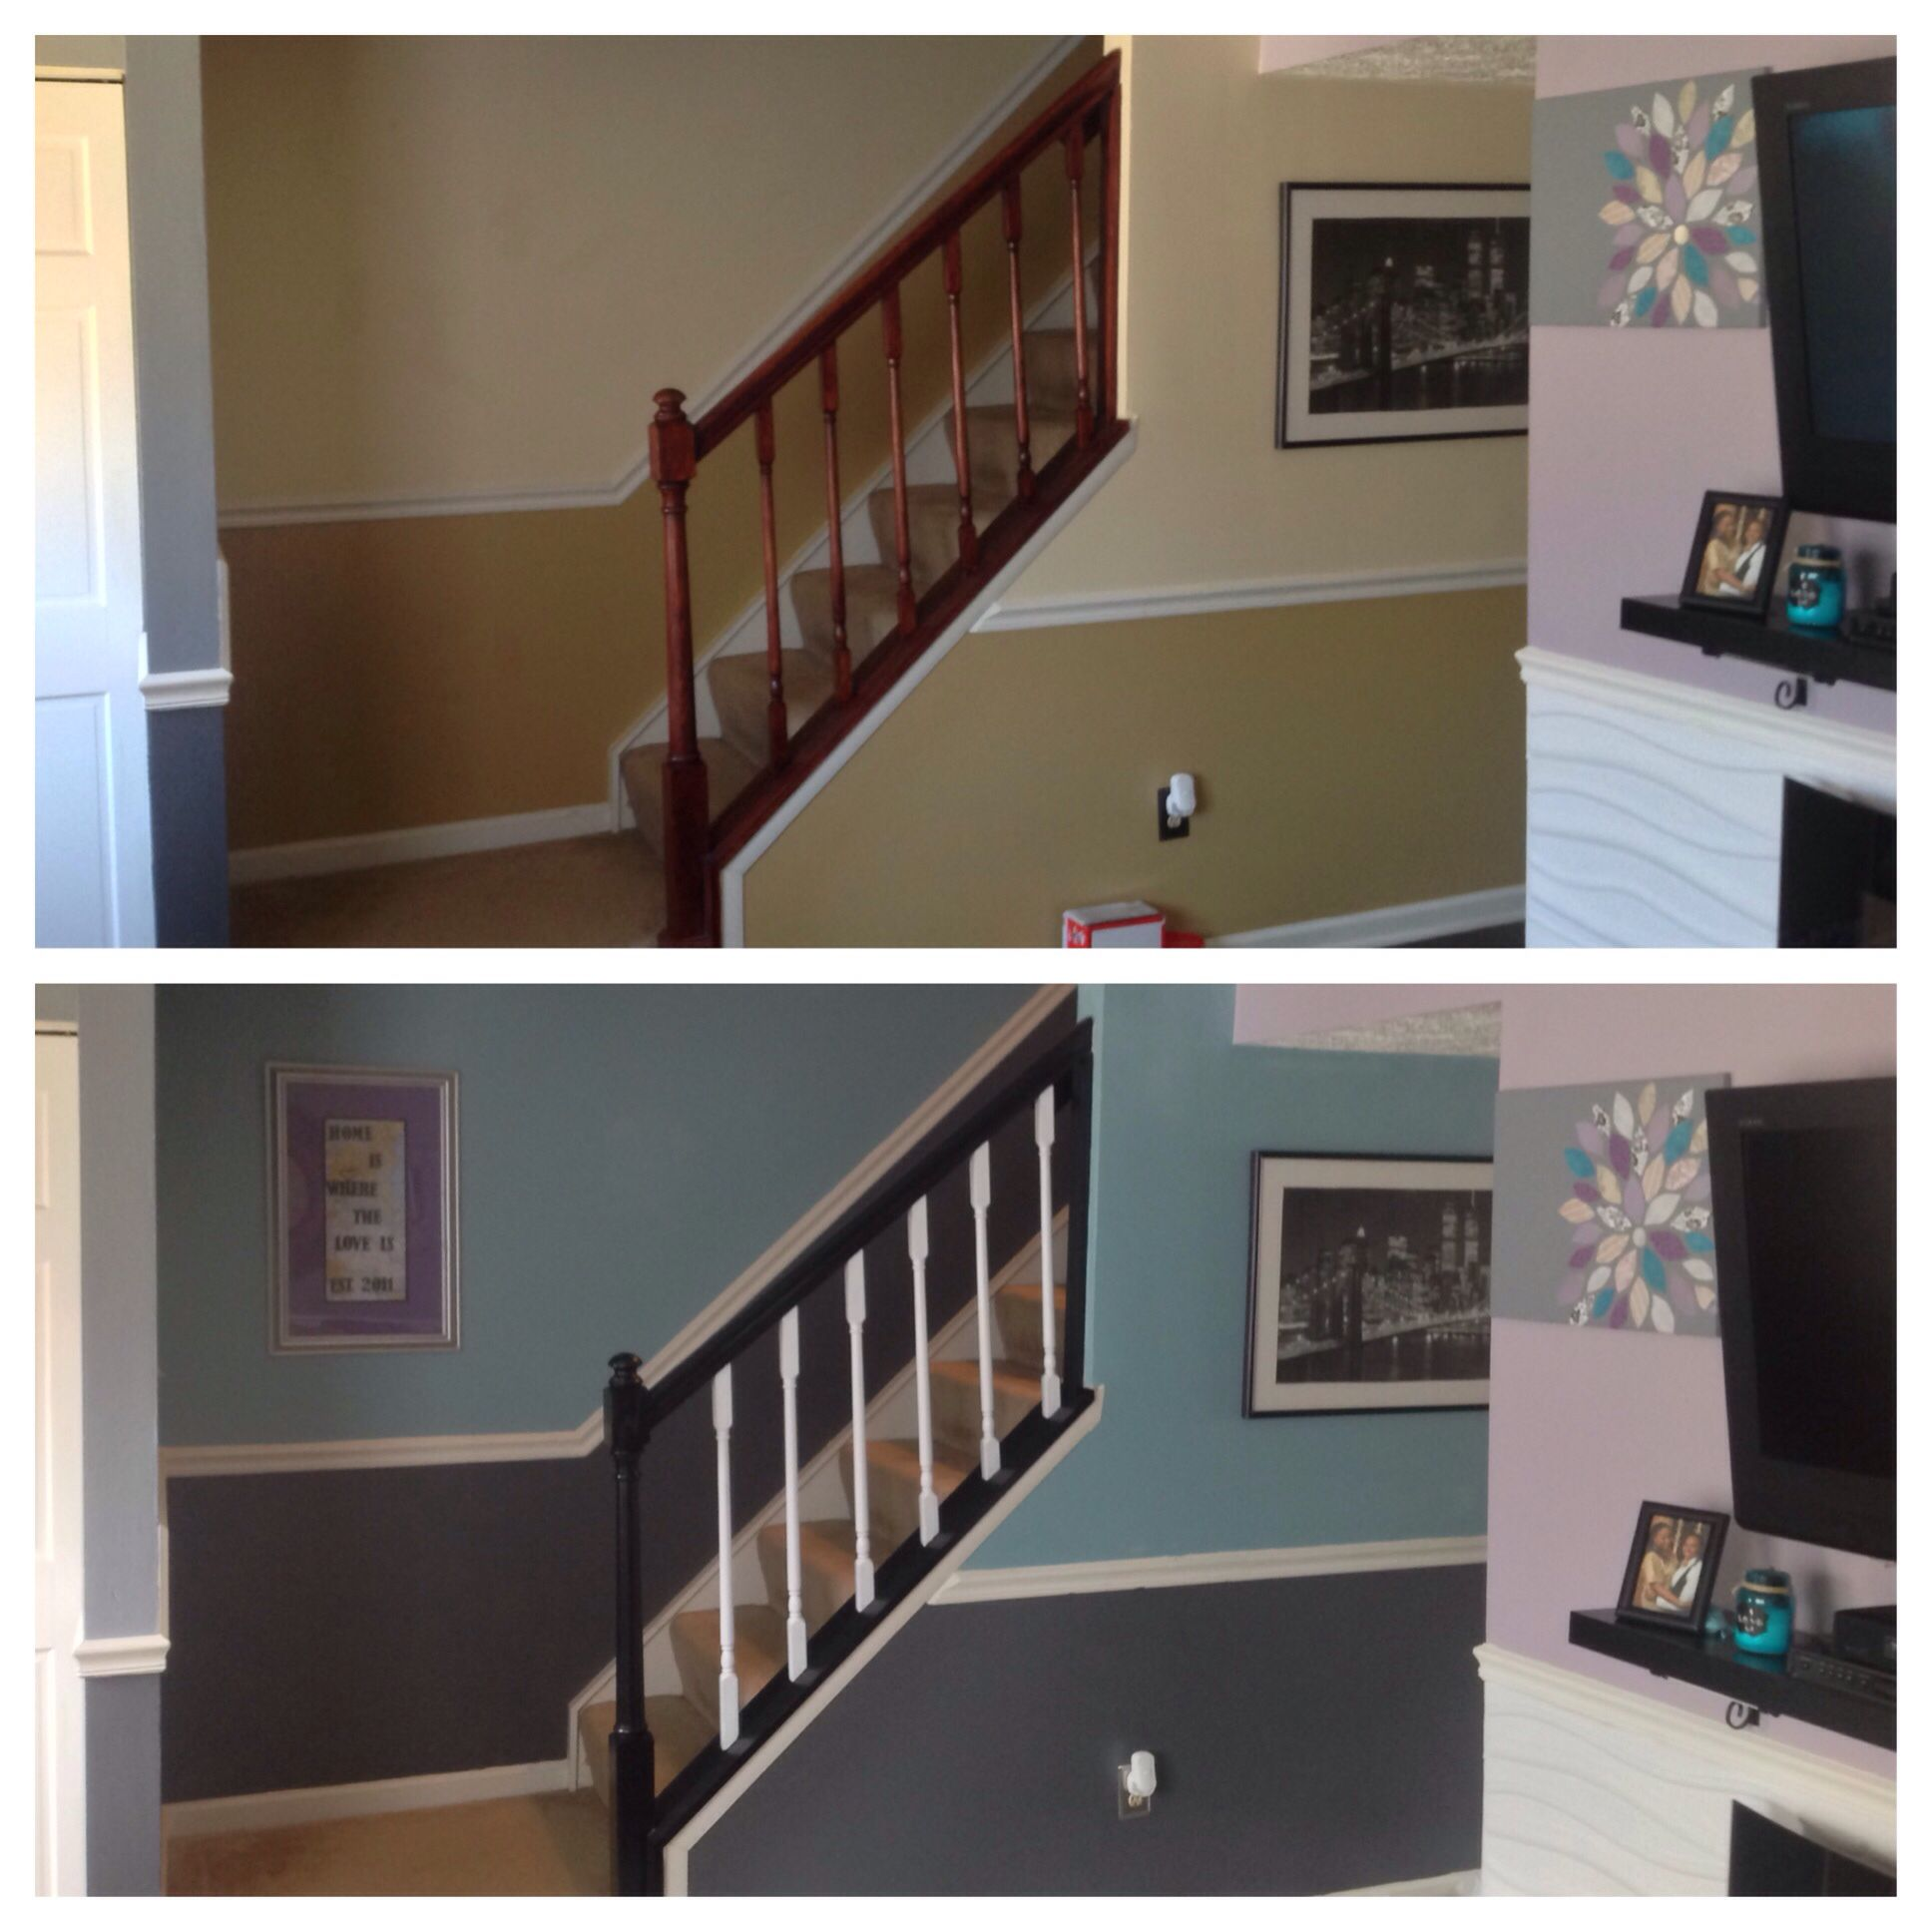 Refreshed Hall And Banister! Wall Colors By Behr: Gulf